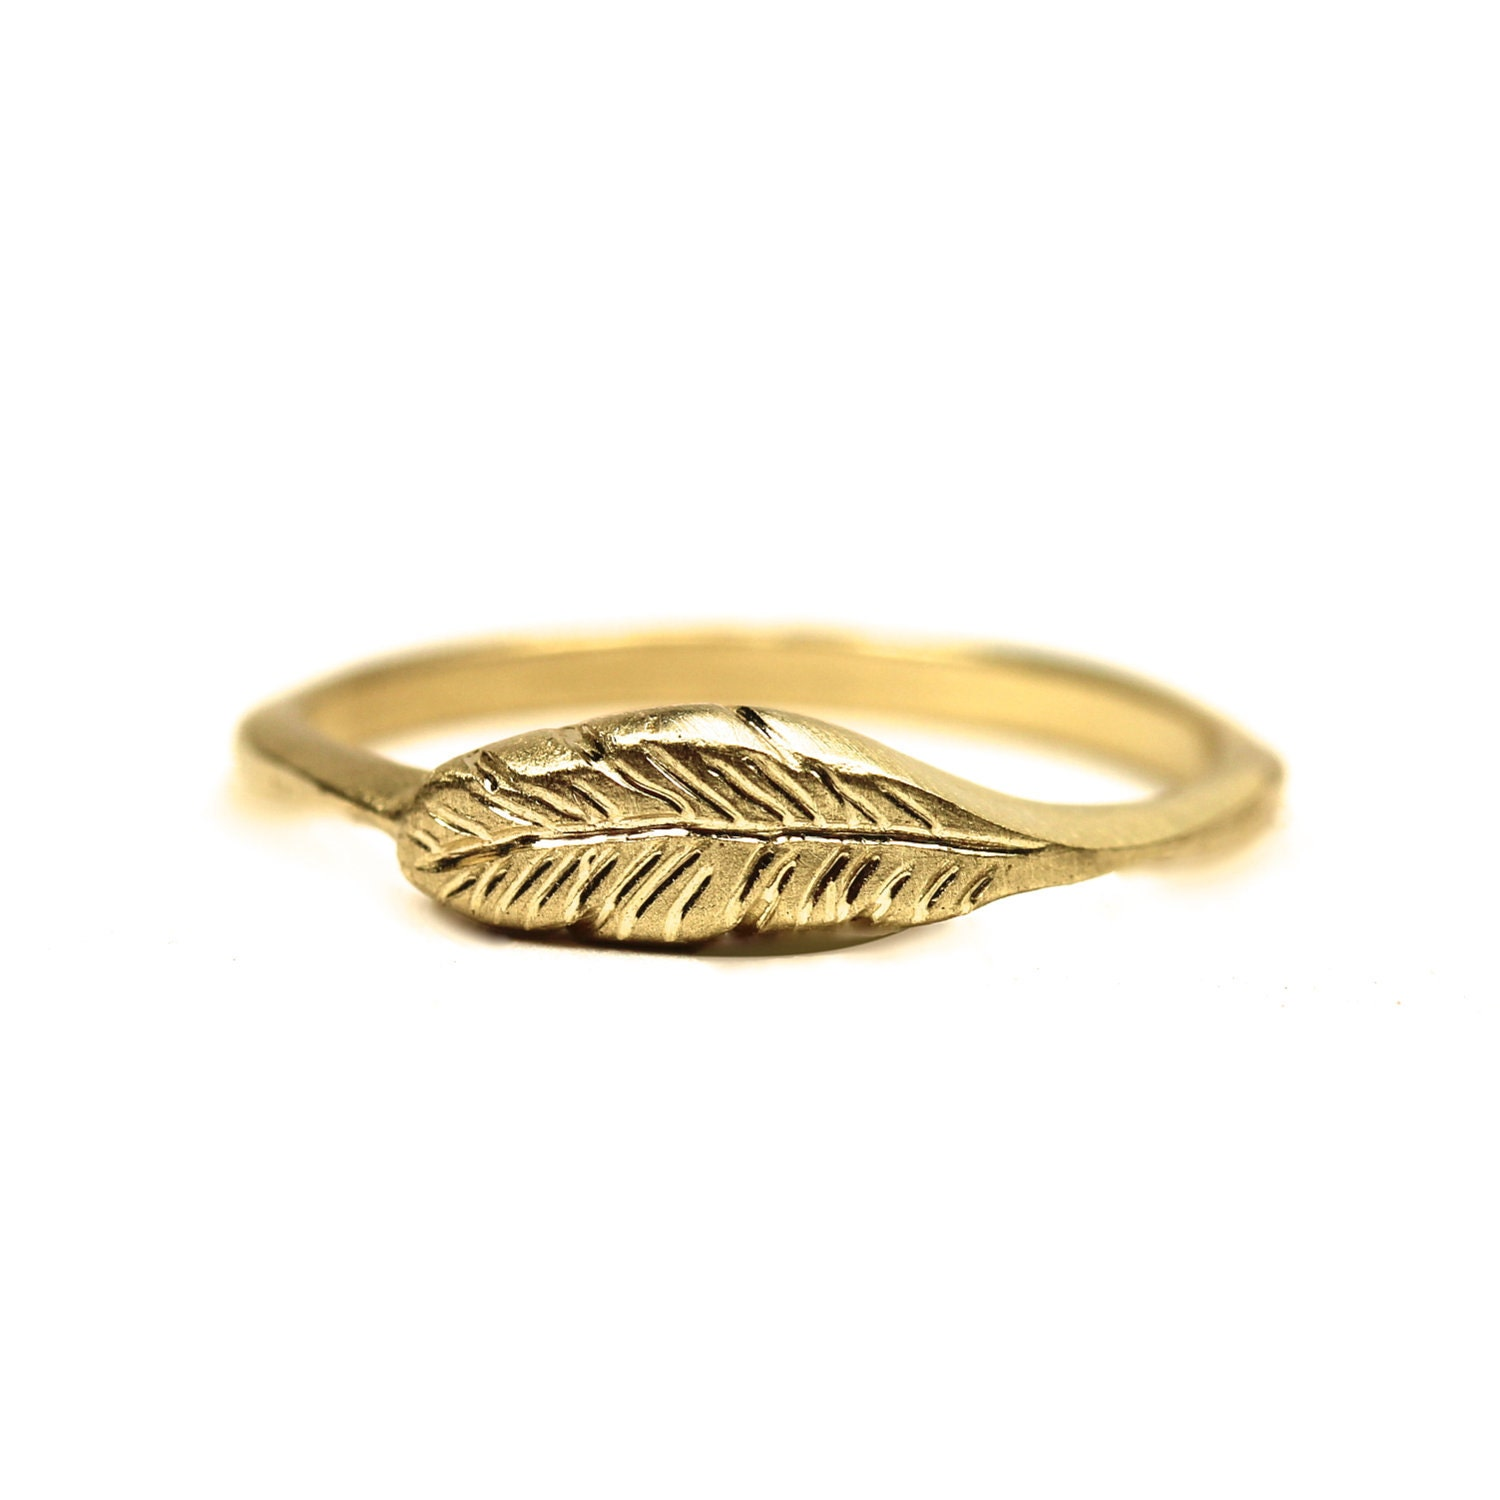 Organic 14K Yellow Gold Feather Ring - Feather's Gold - NangijalaJewelry